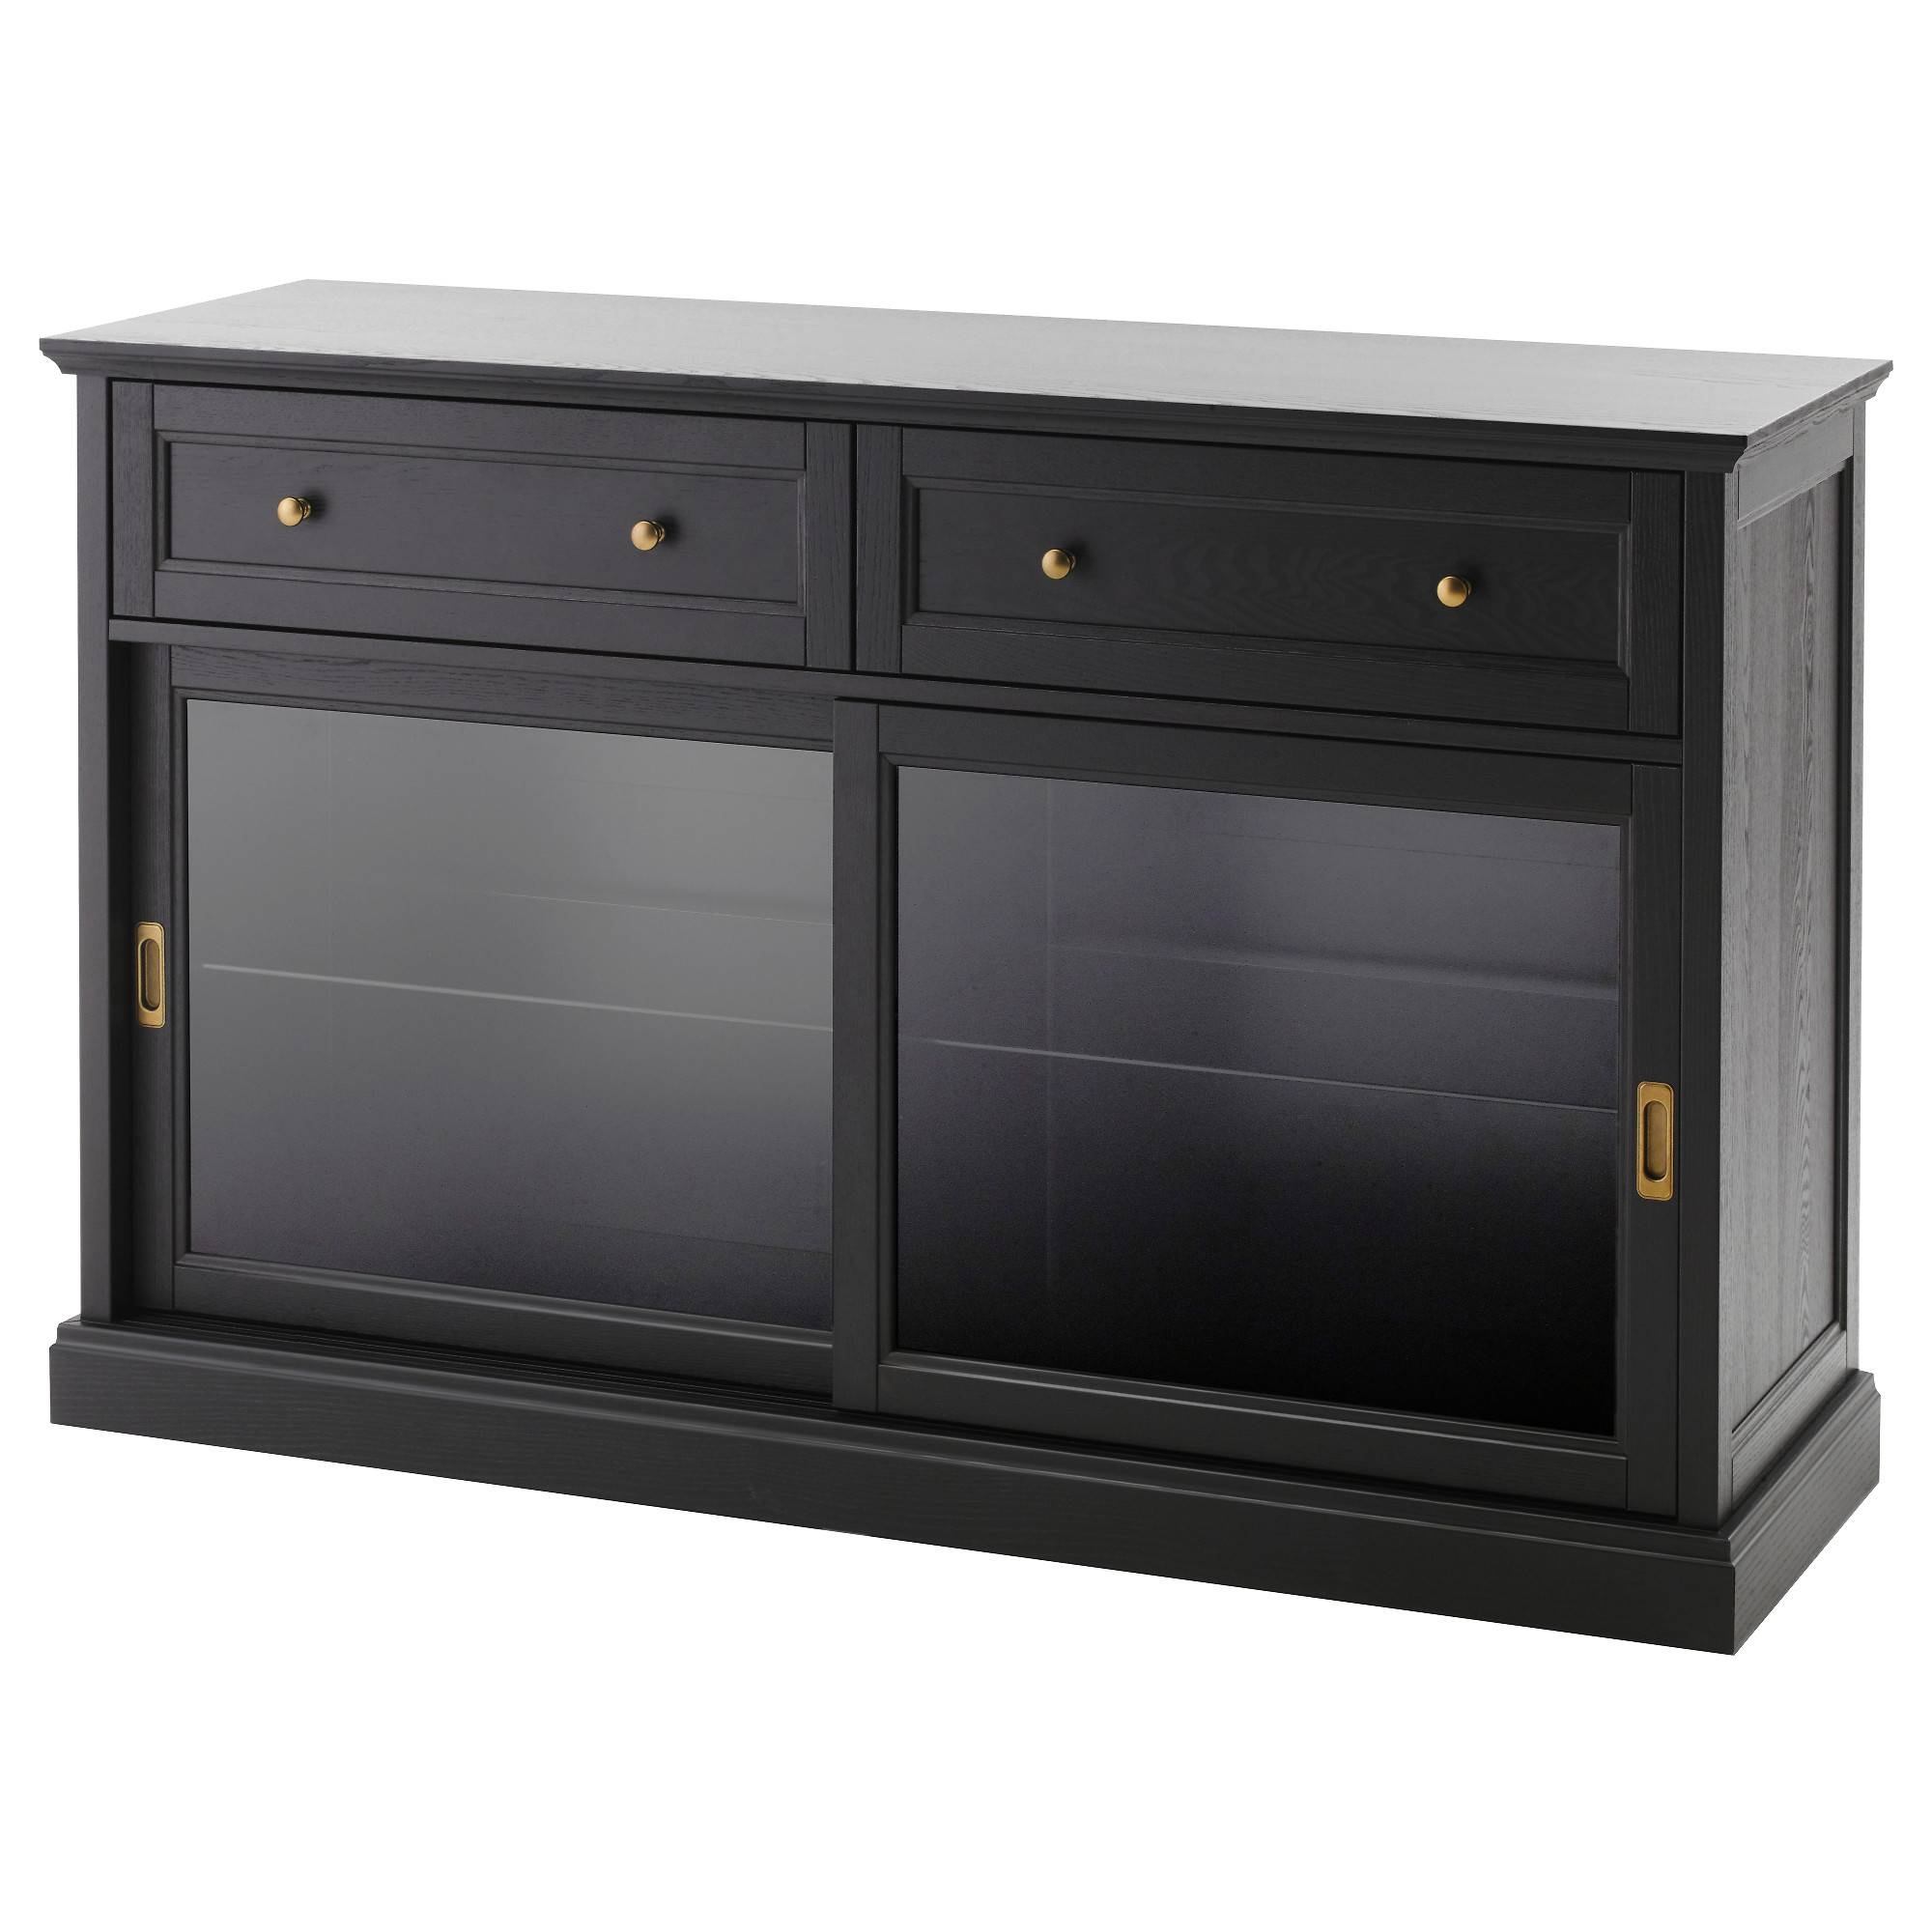 Buffet Tables & Sideboards - Ikea inside Black Wood Sideboards (Image 2 of 30)